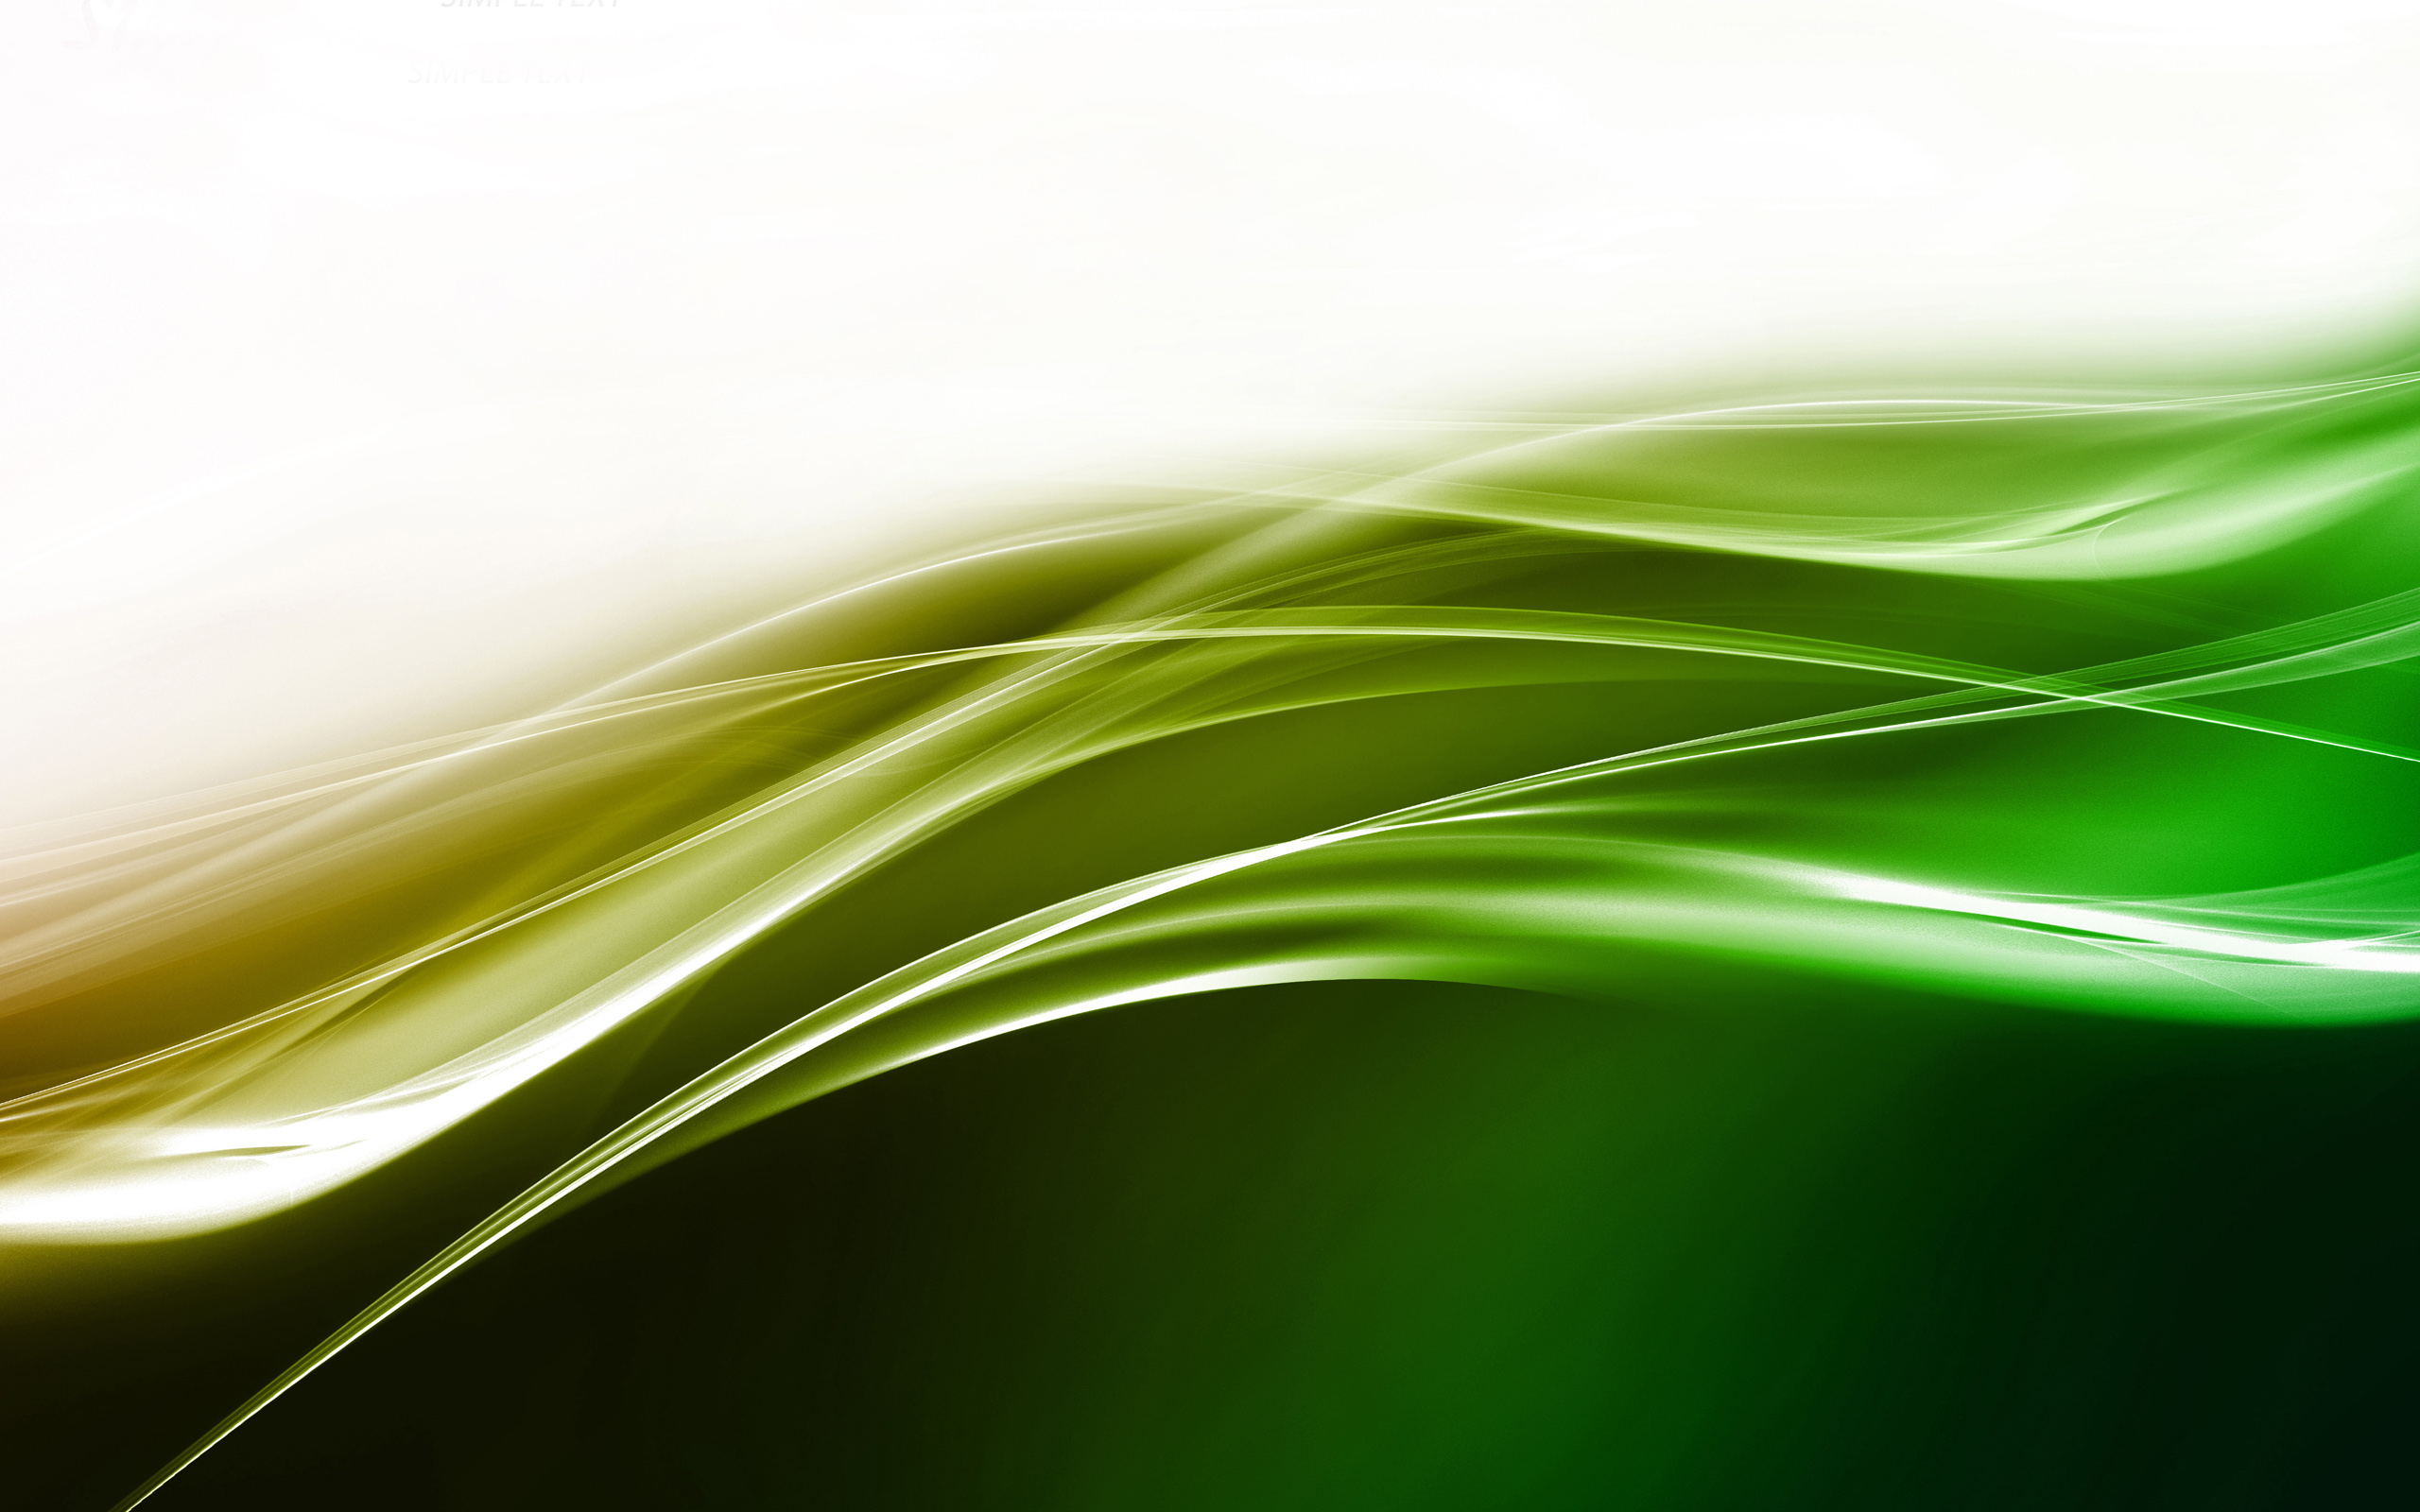 green abstract 27592